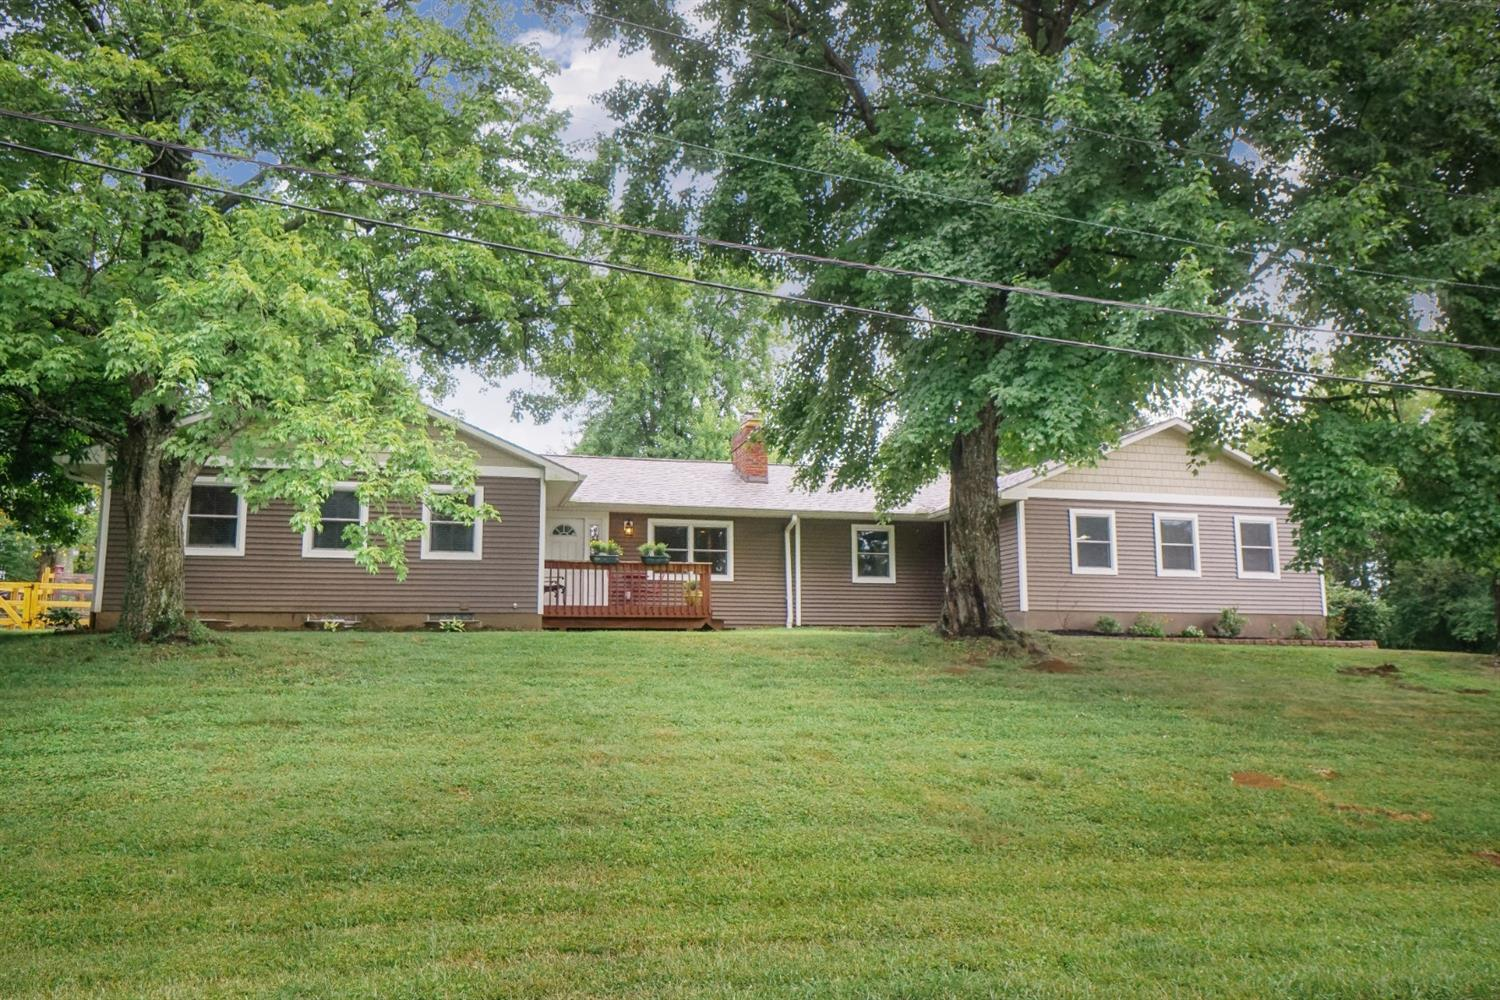 Photo 1 for 22 Oakcrest Dr Milford, OH 45150